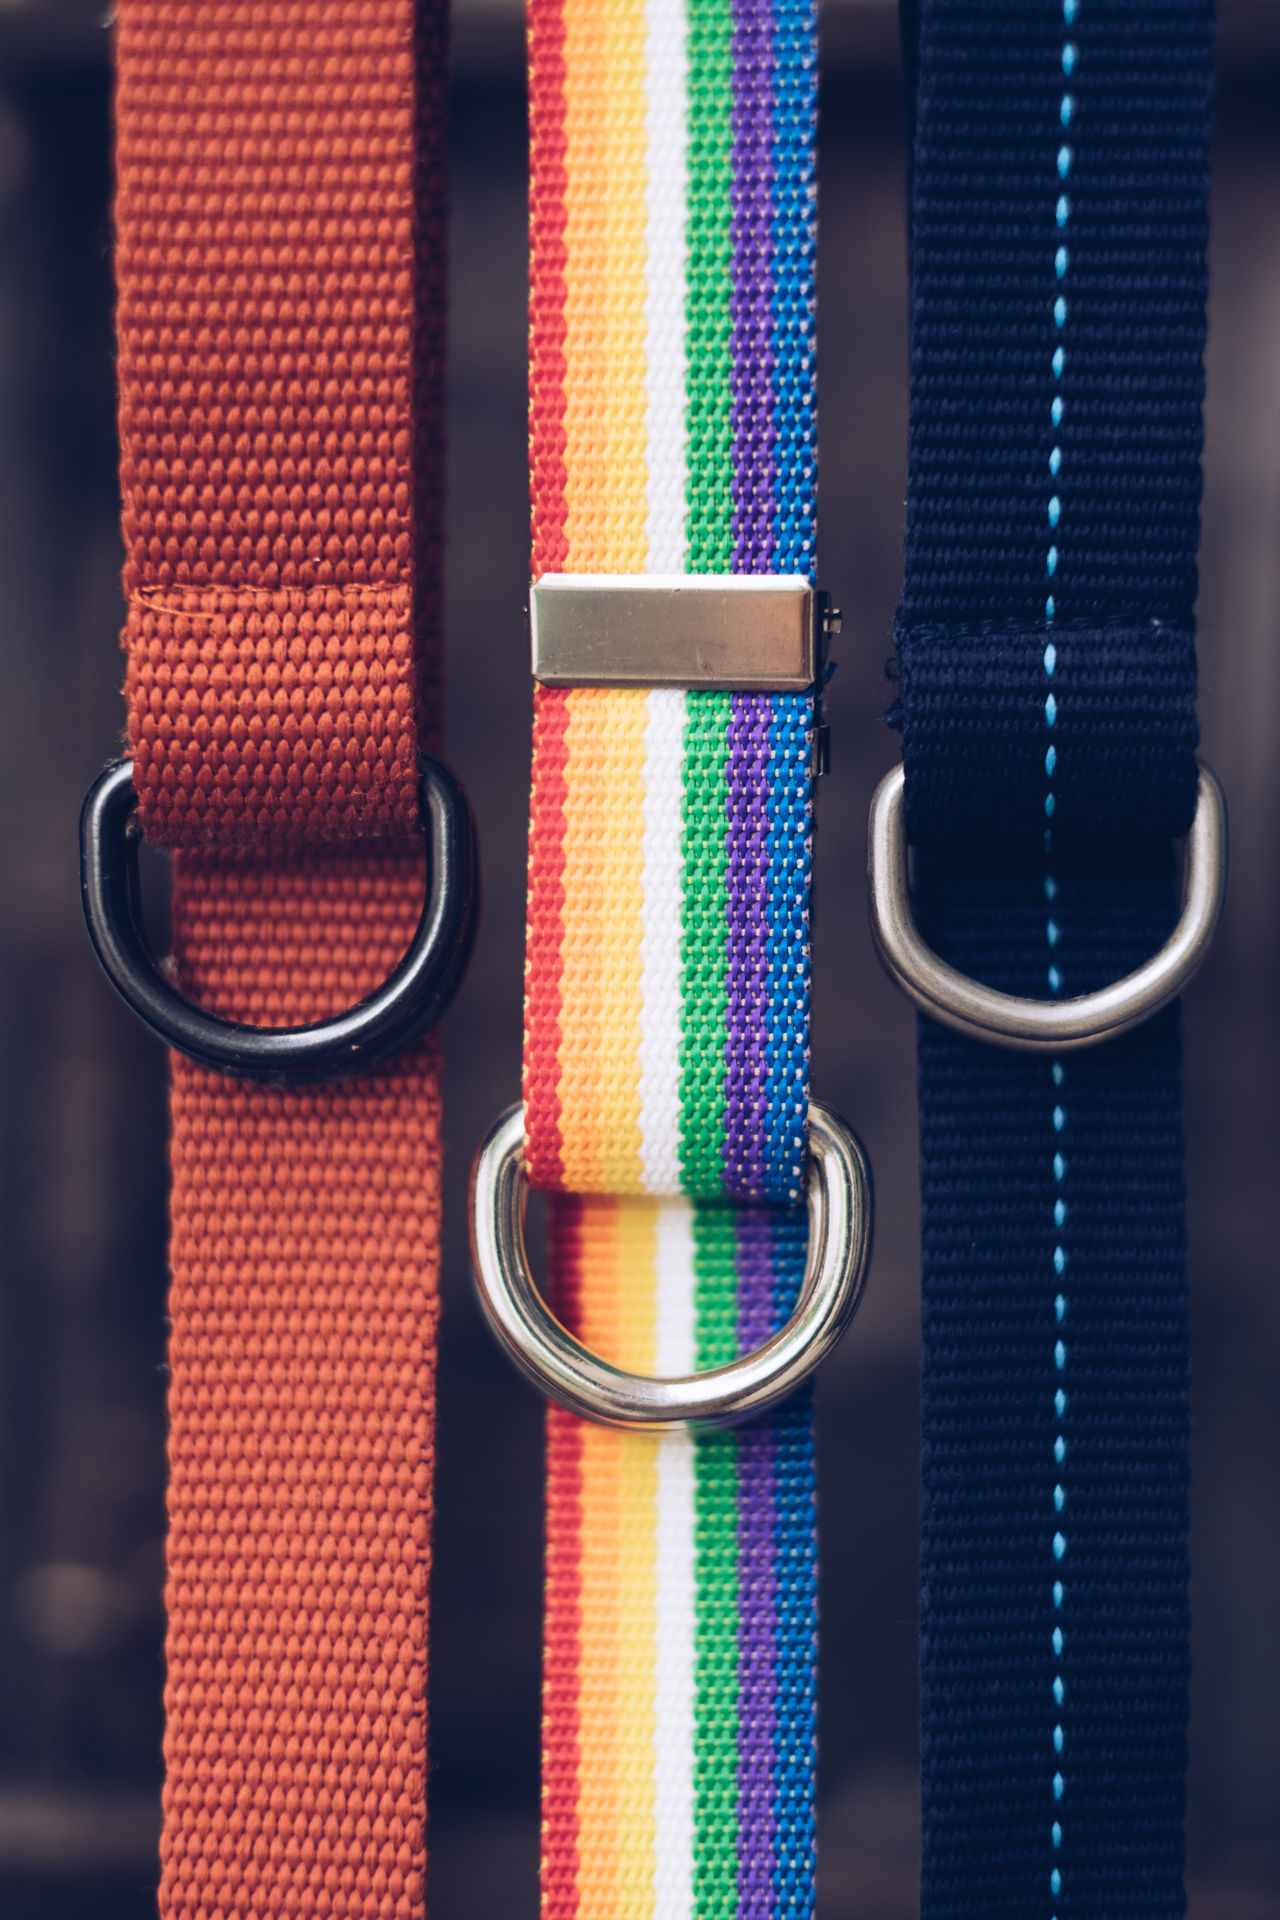 Belt  Close-up Collection Fabric Fashion Hanging Lines Loop Metal Multi Colored Odd Organized Personal Portrait Stitch Strap Style Texture Three Weave